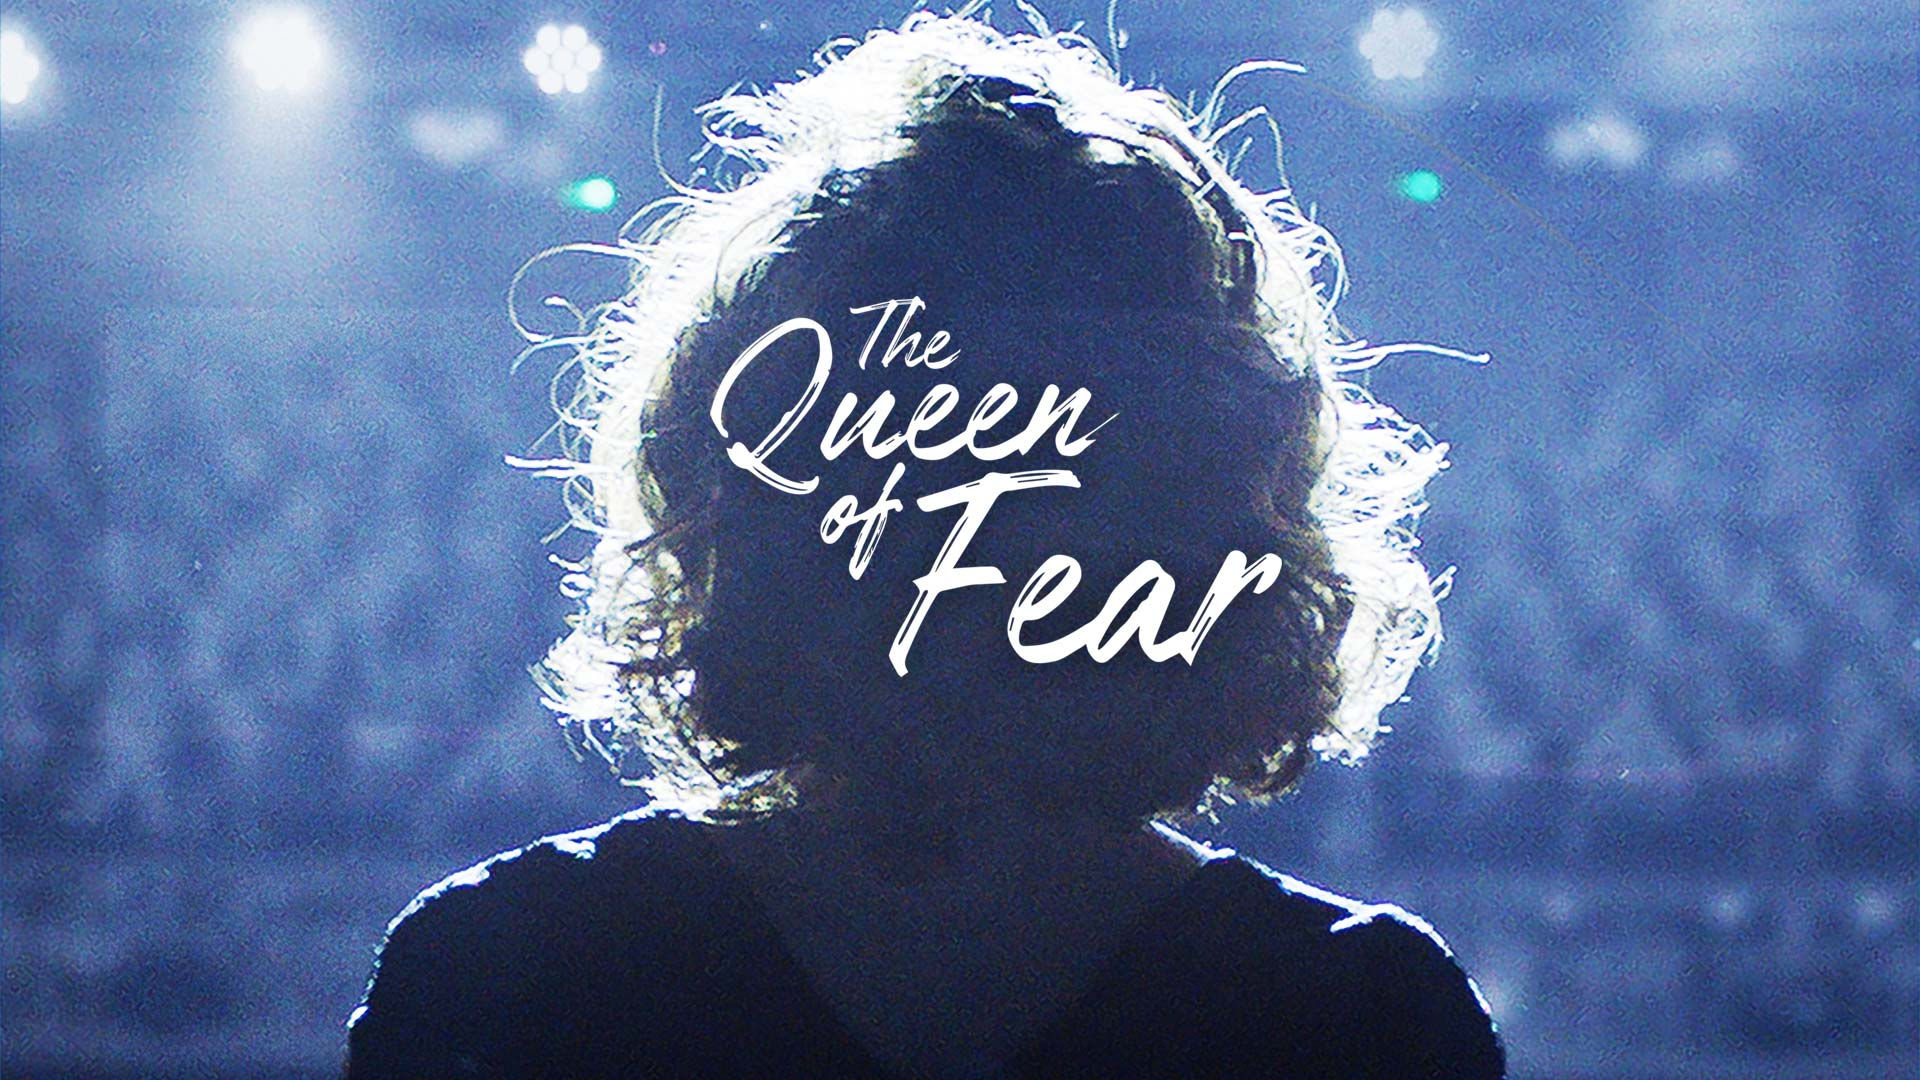 The Queen of Fear - image